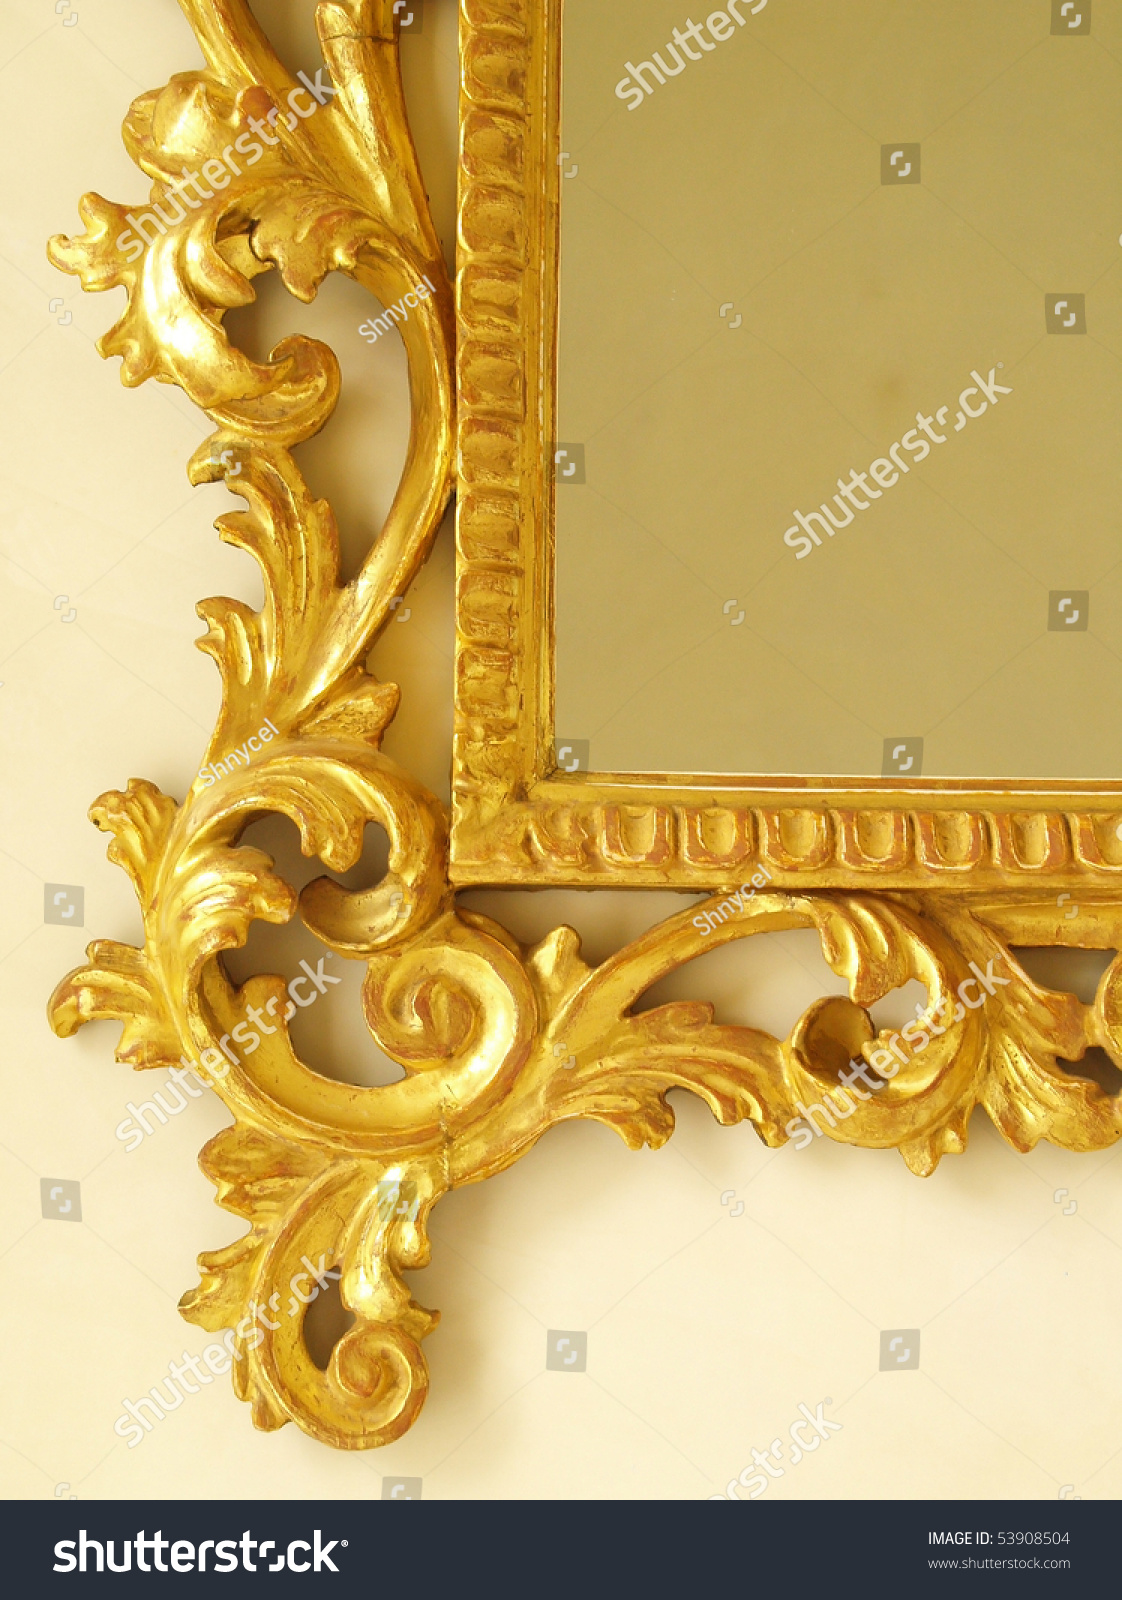 golden antique mirror frame molding